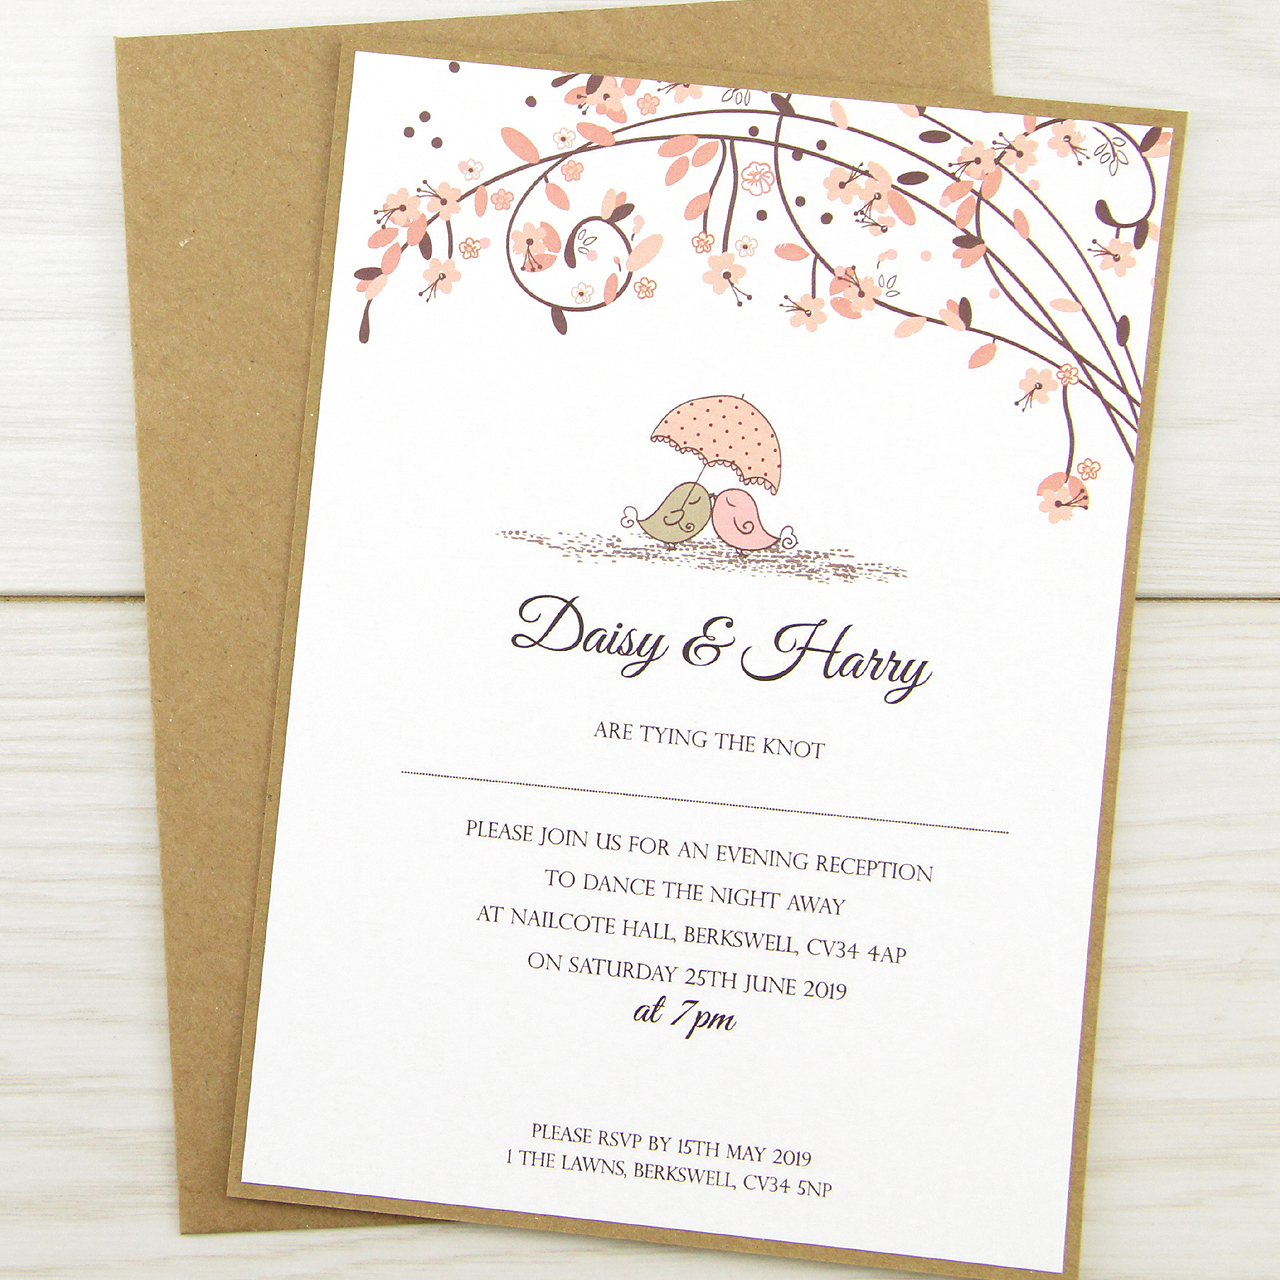 Samples Of Wedding Invites: Love Birds Evening Invitation